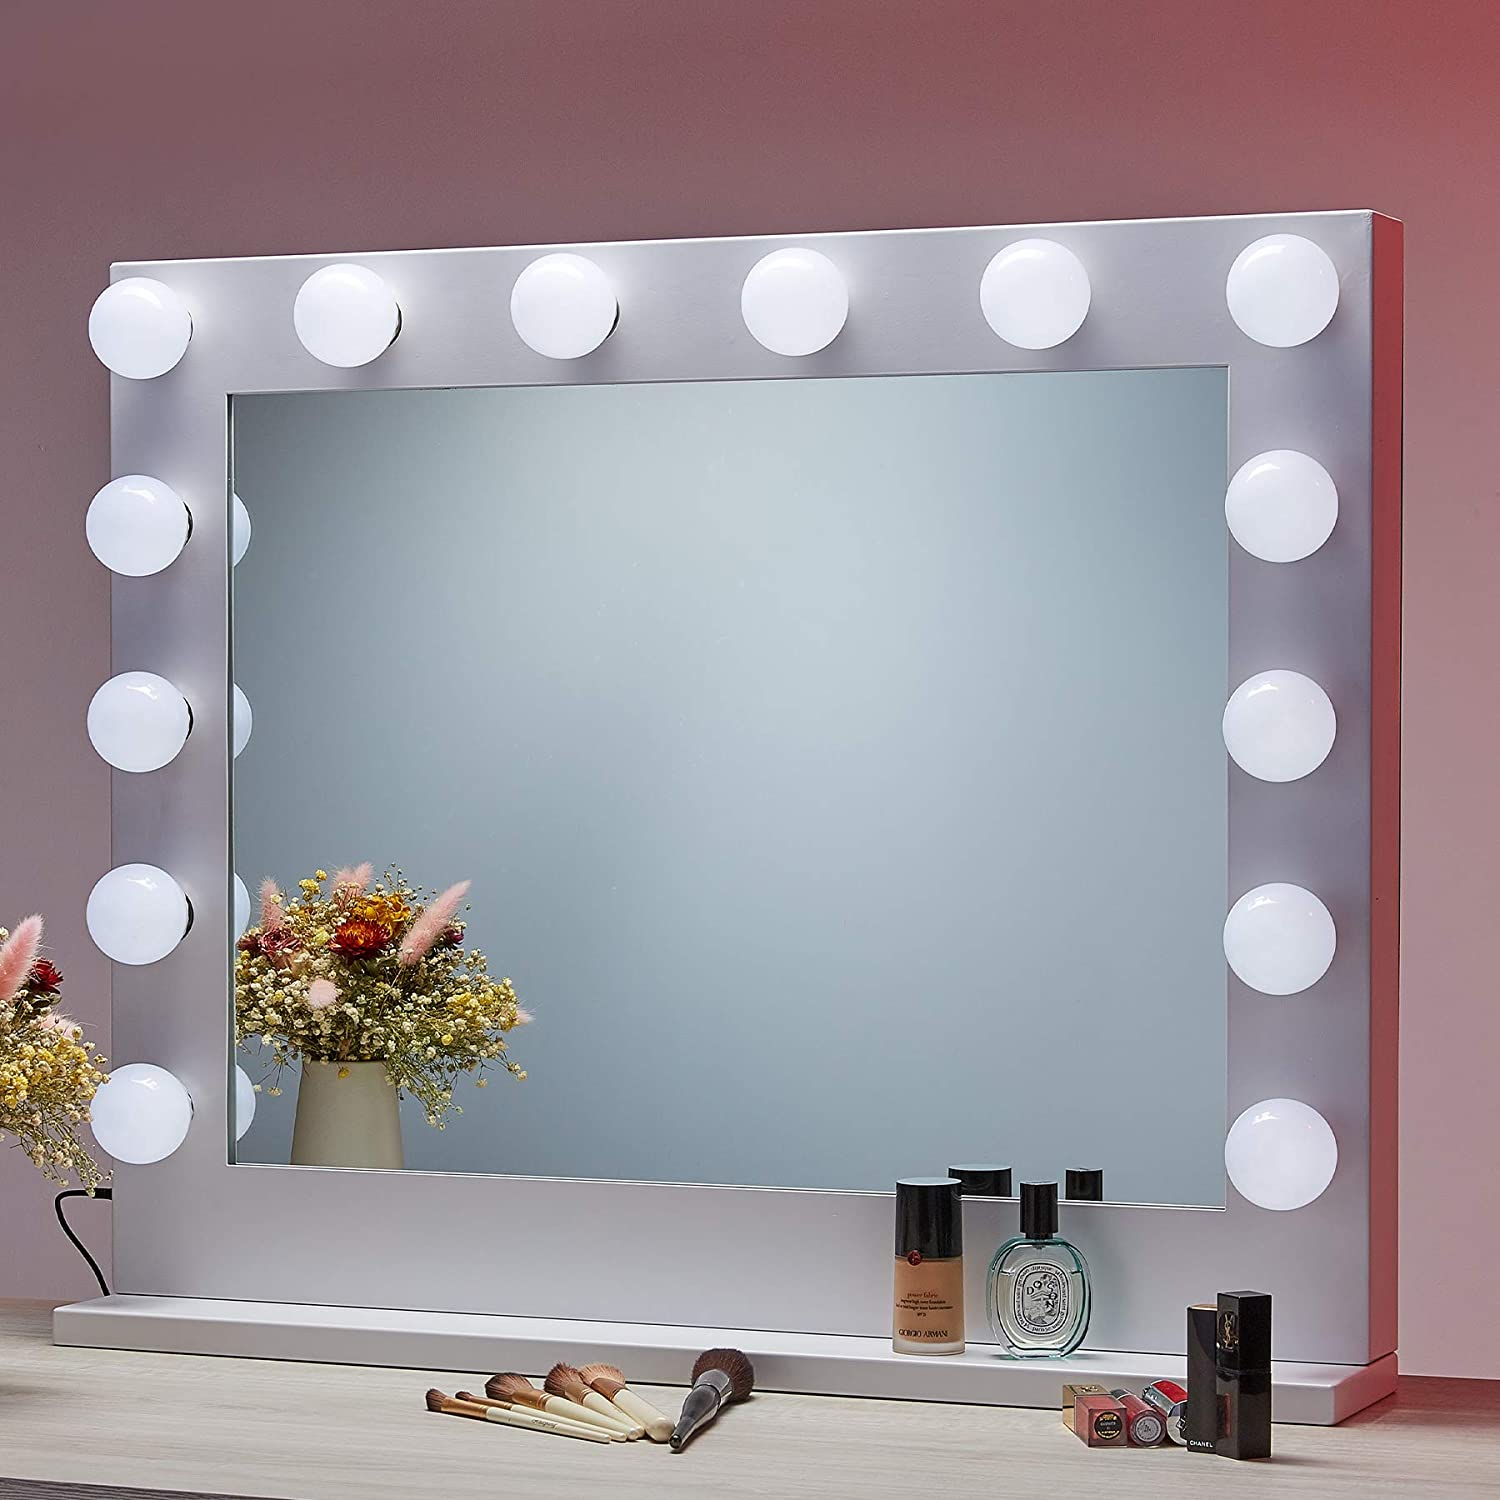 CO-Z Max 81% OFF 31 Kansas City Mall x 25'' Hollywood Makeup Whi Lights with Dimmable Mirror